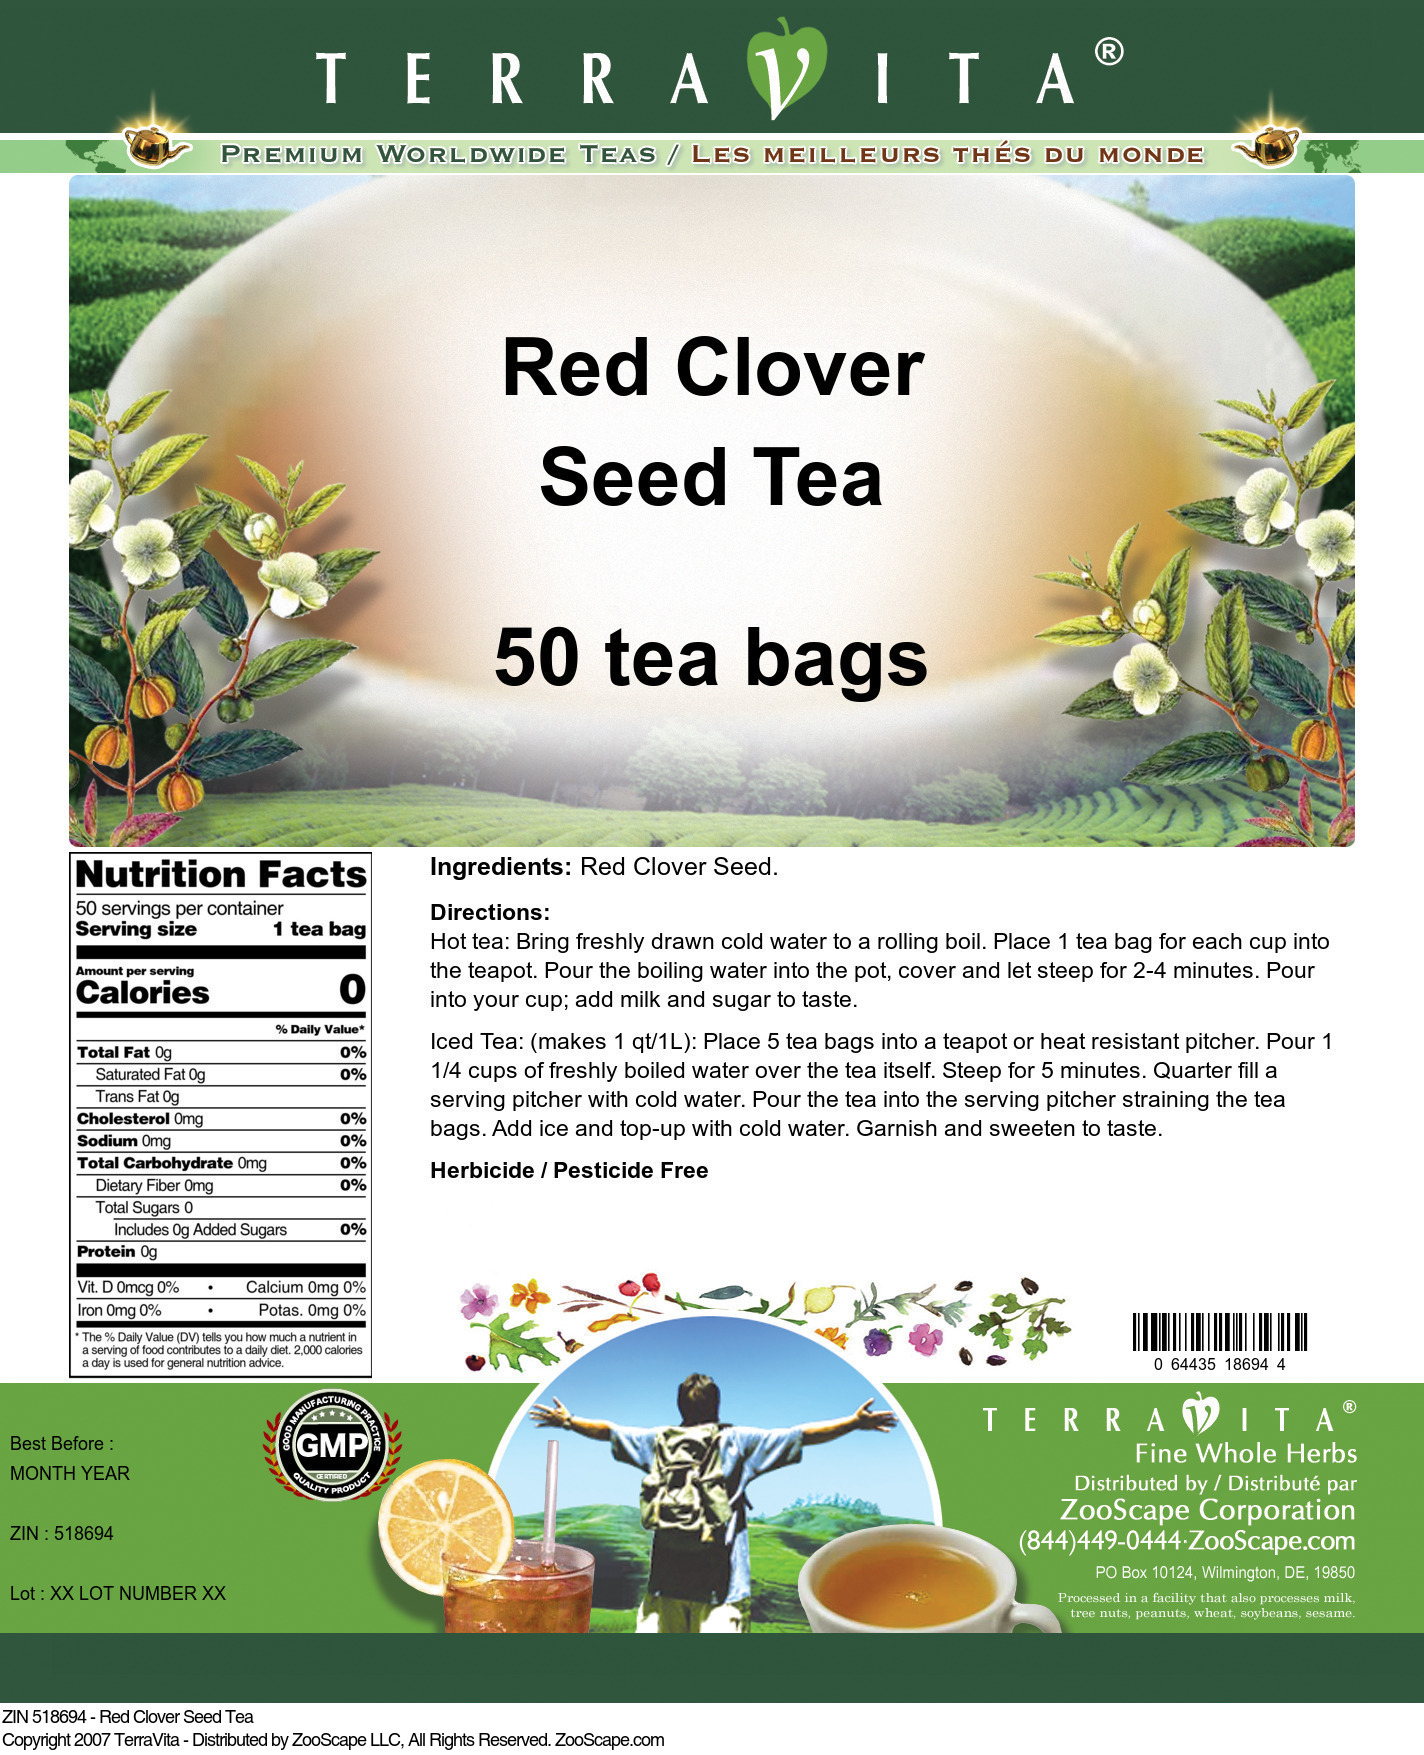 Red Clover Seed Tea